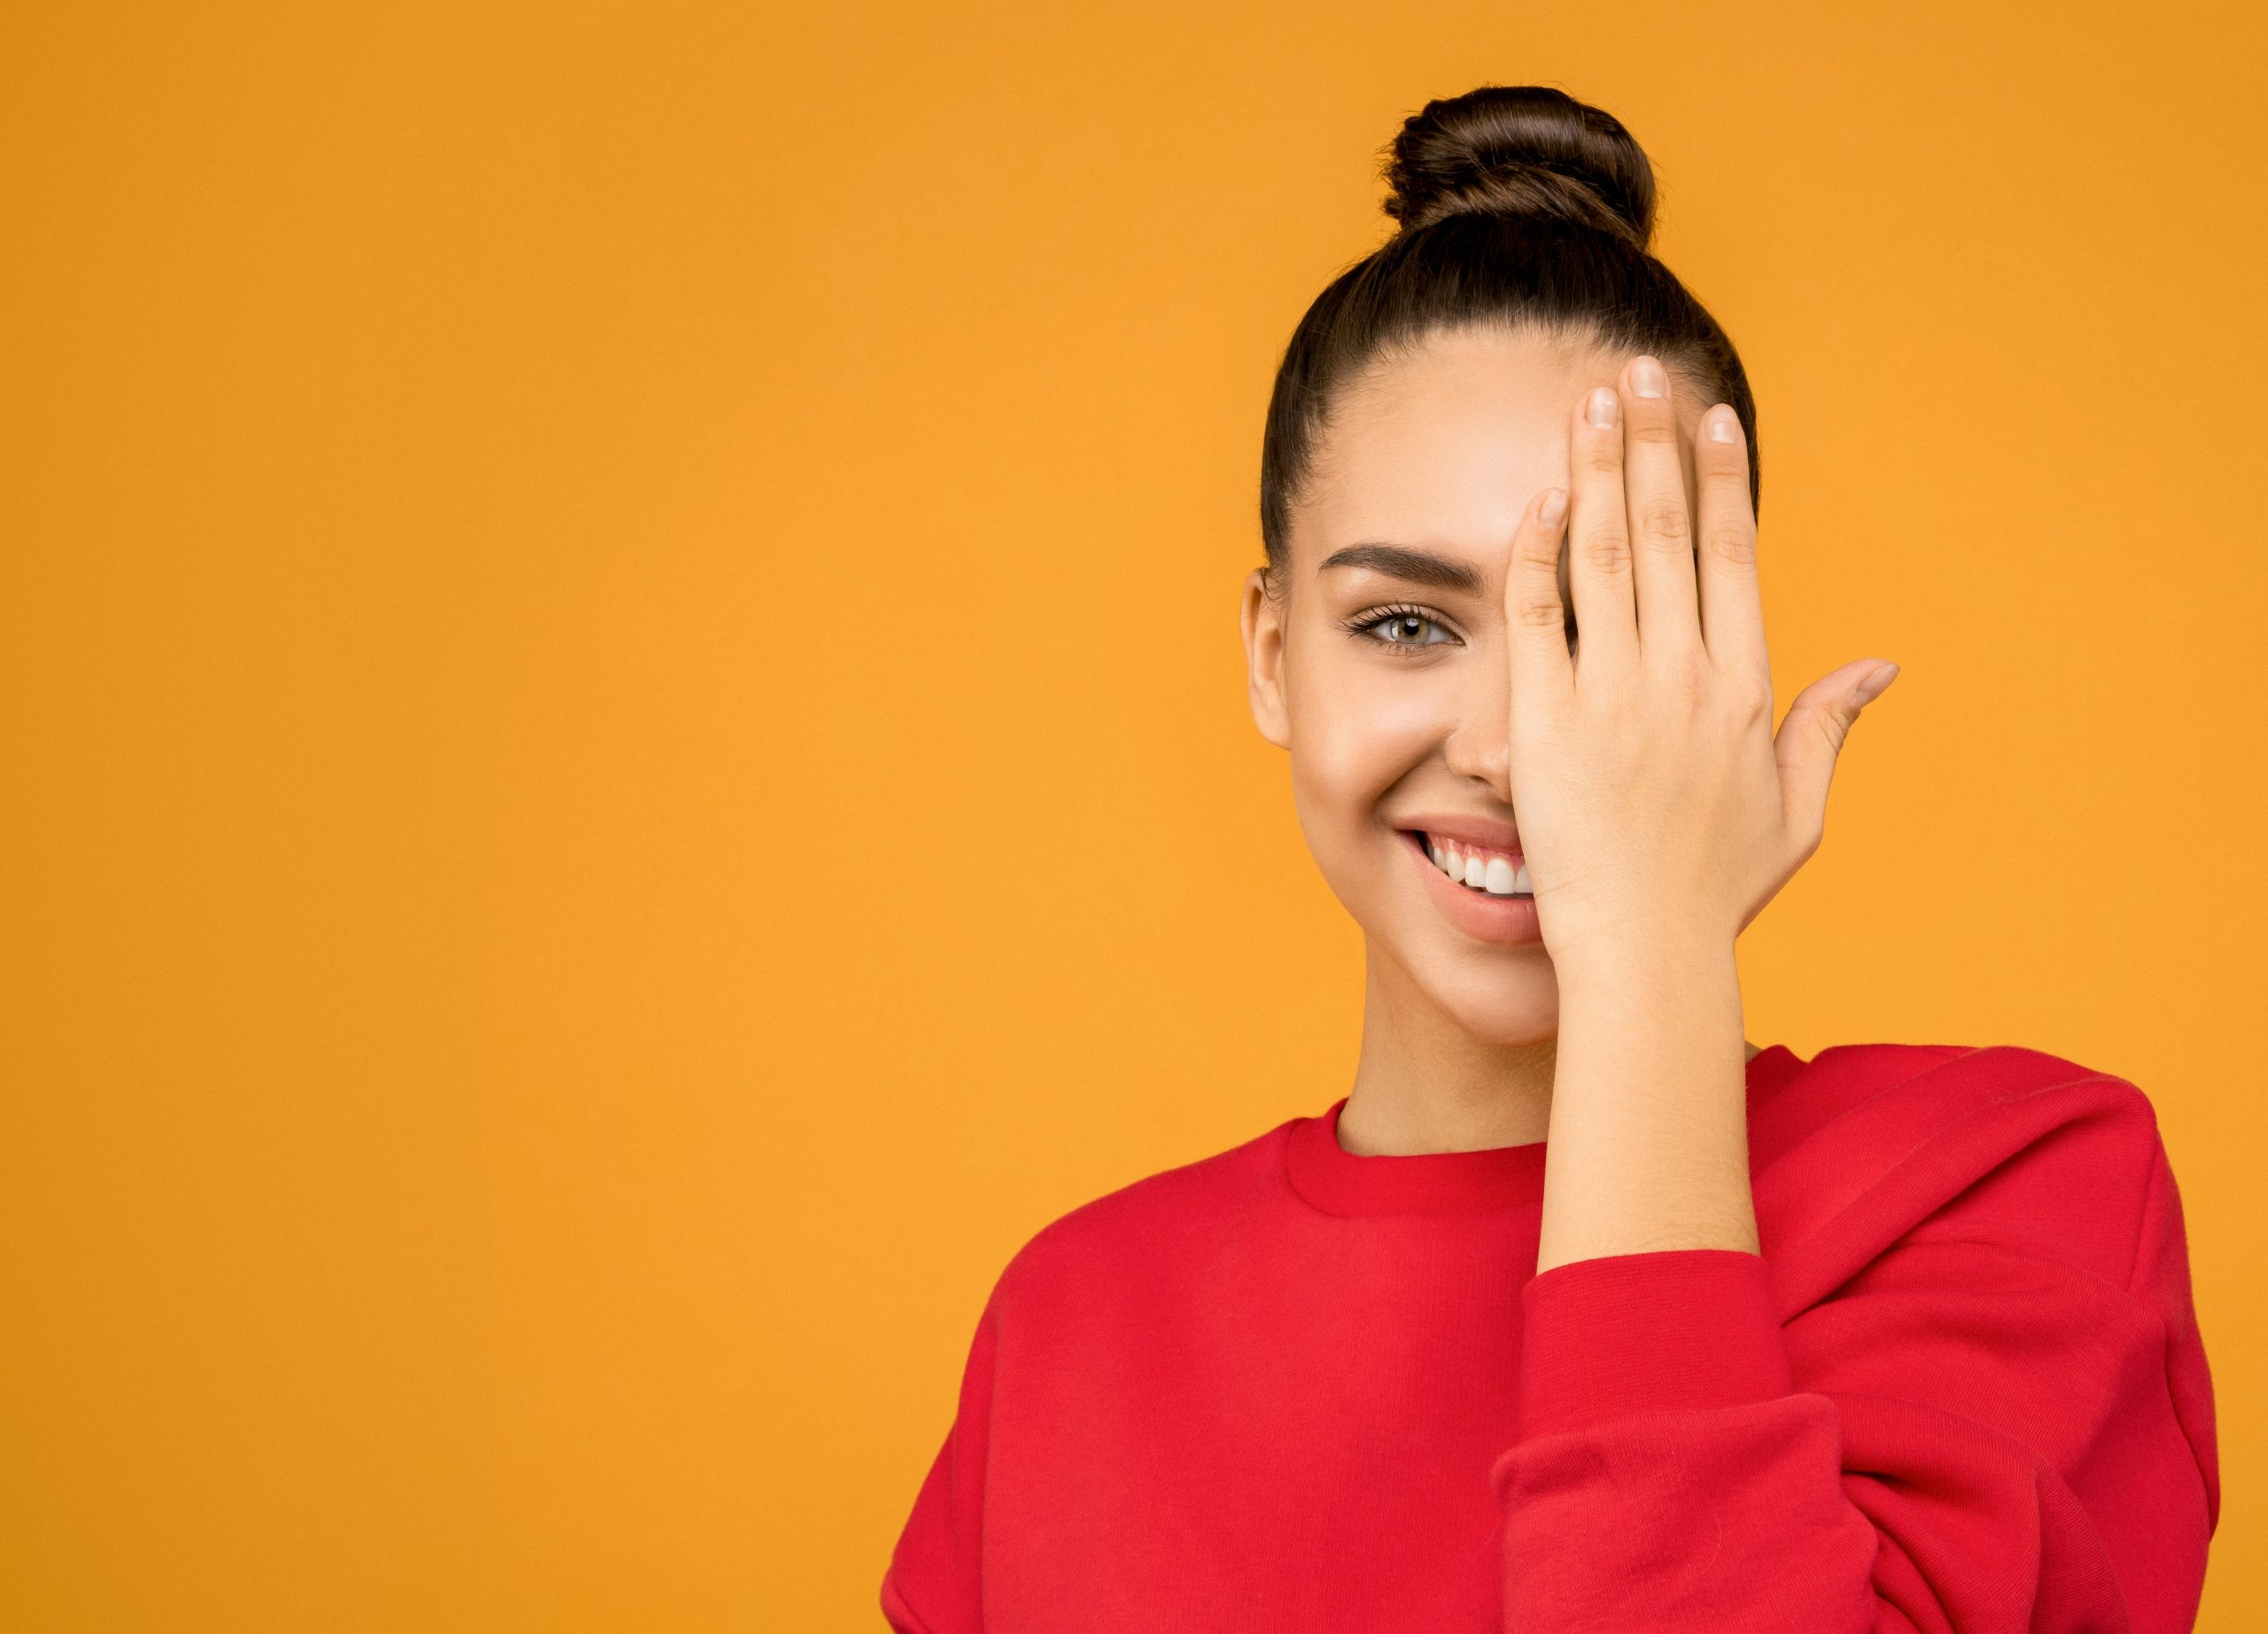 woman wearing a red sweater on orange background